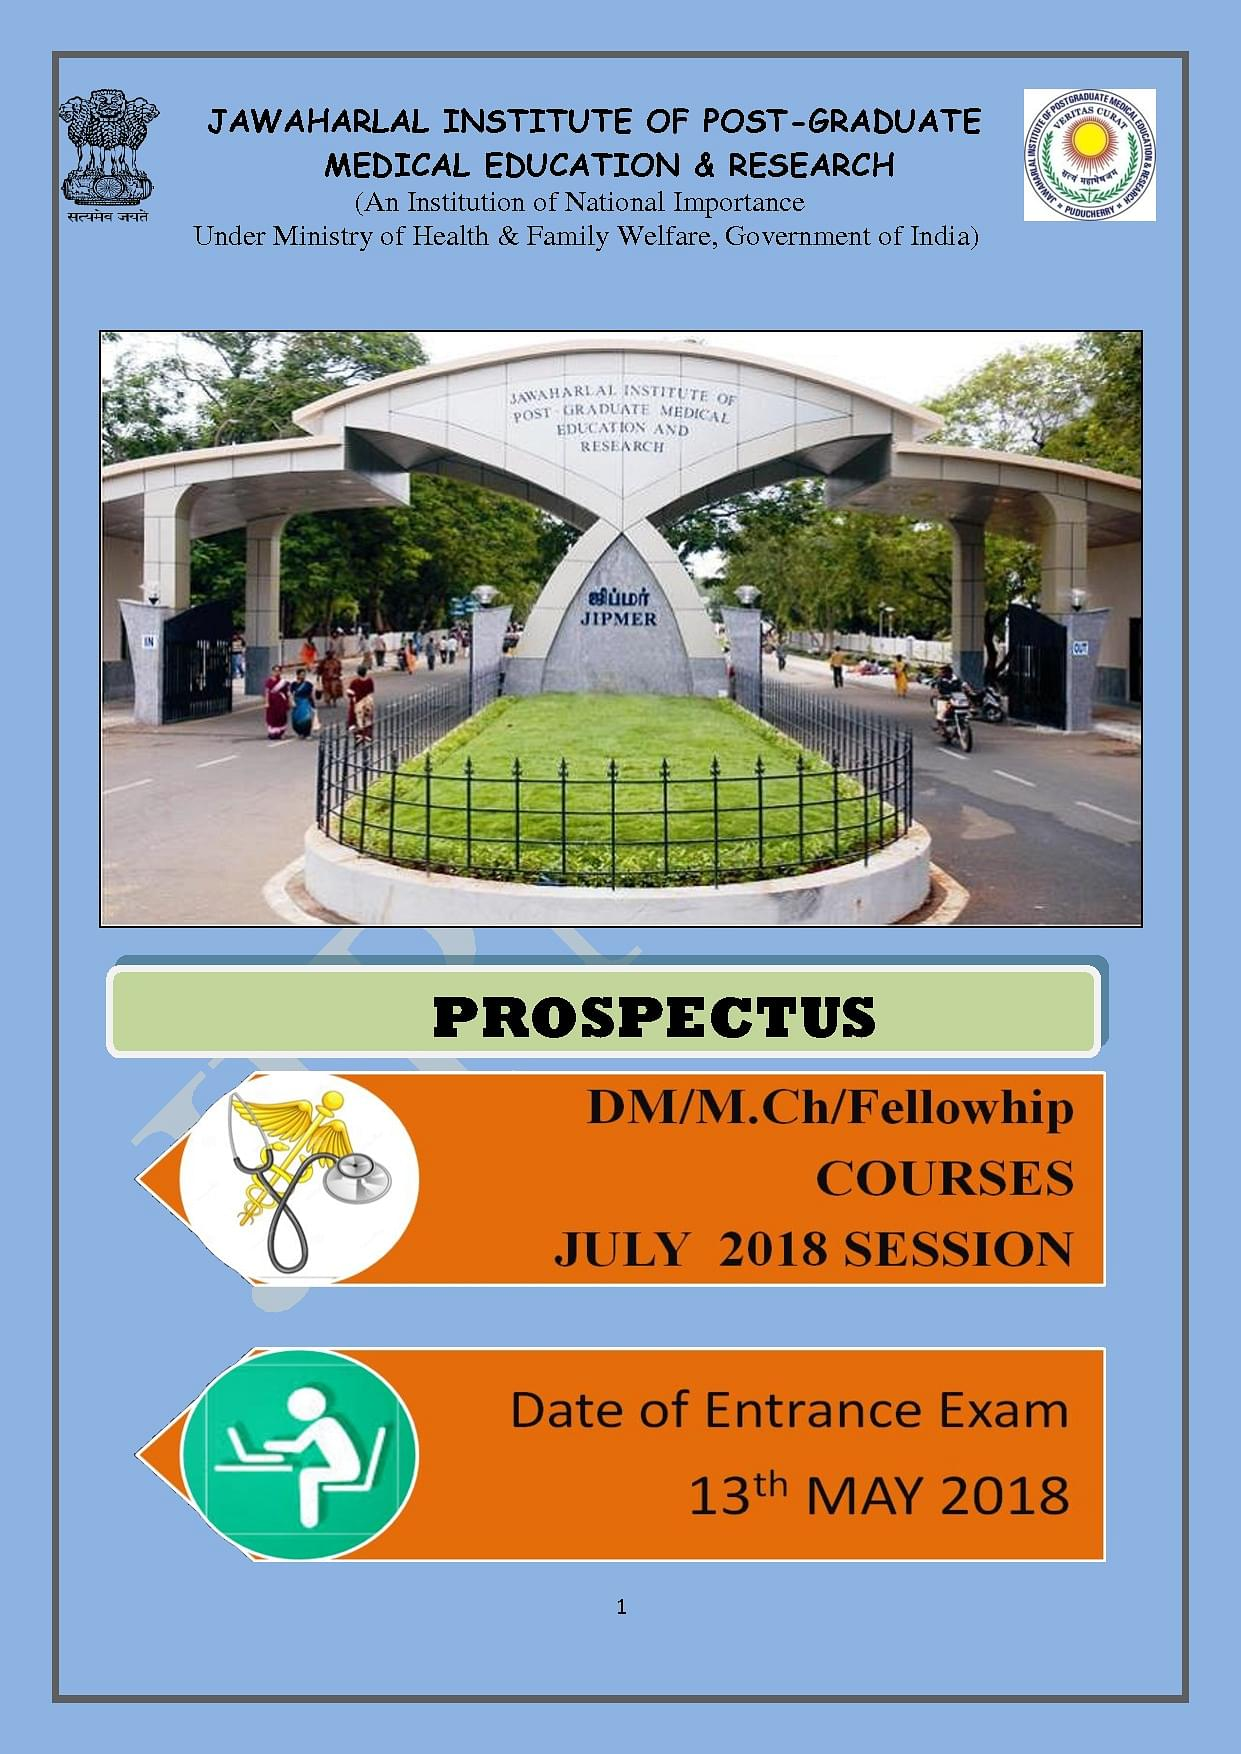 JIPMER Pondicherry - Admissions, Courses, Fees, Results, Ranking